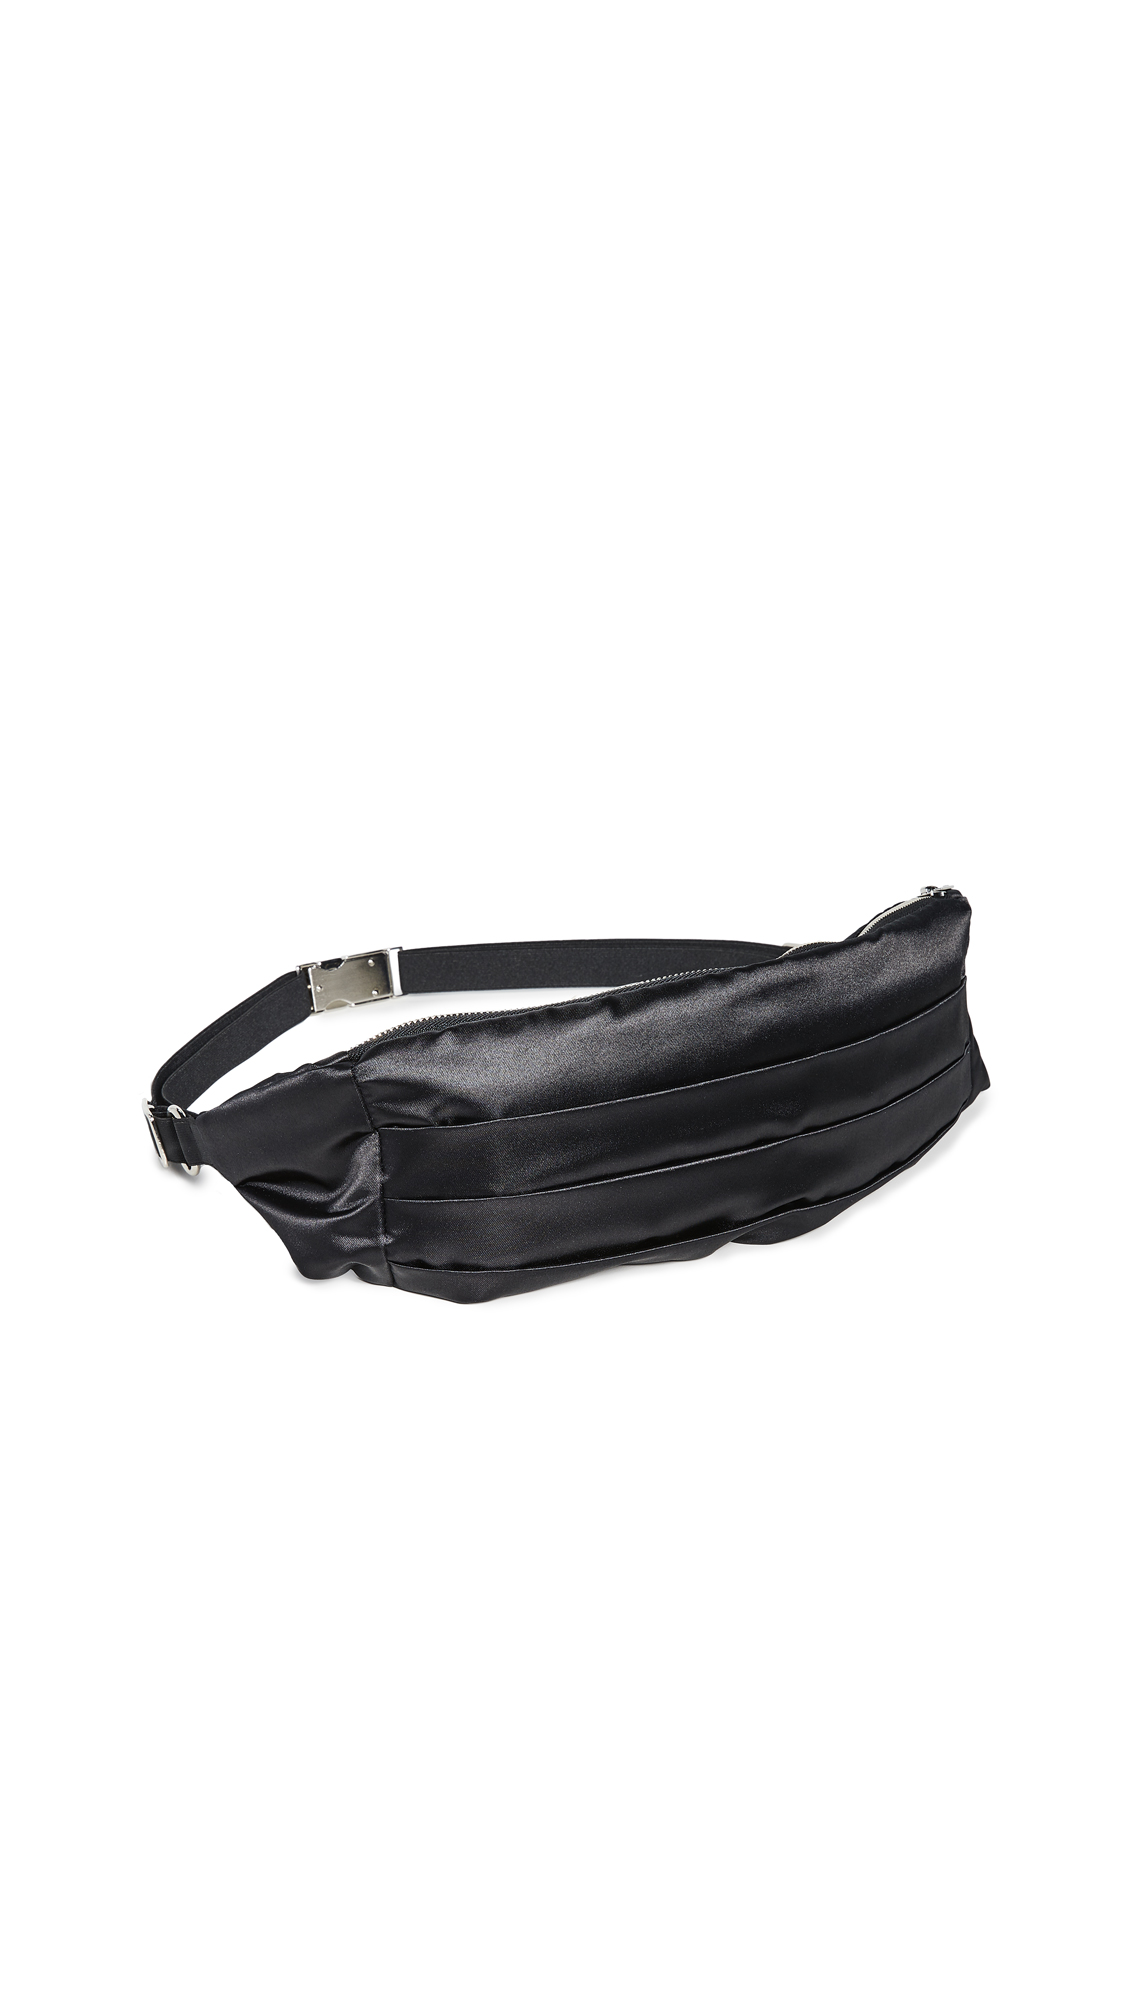 Buy MM6 Maison Margiela online - photo of MM6 Maison Margiela Tuxedo Fanny Pack